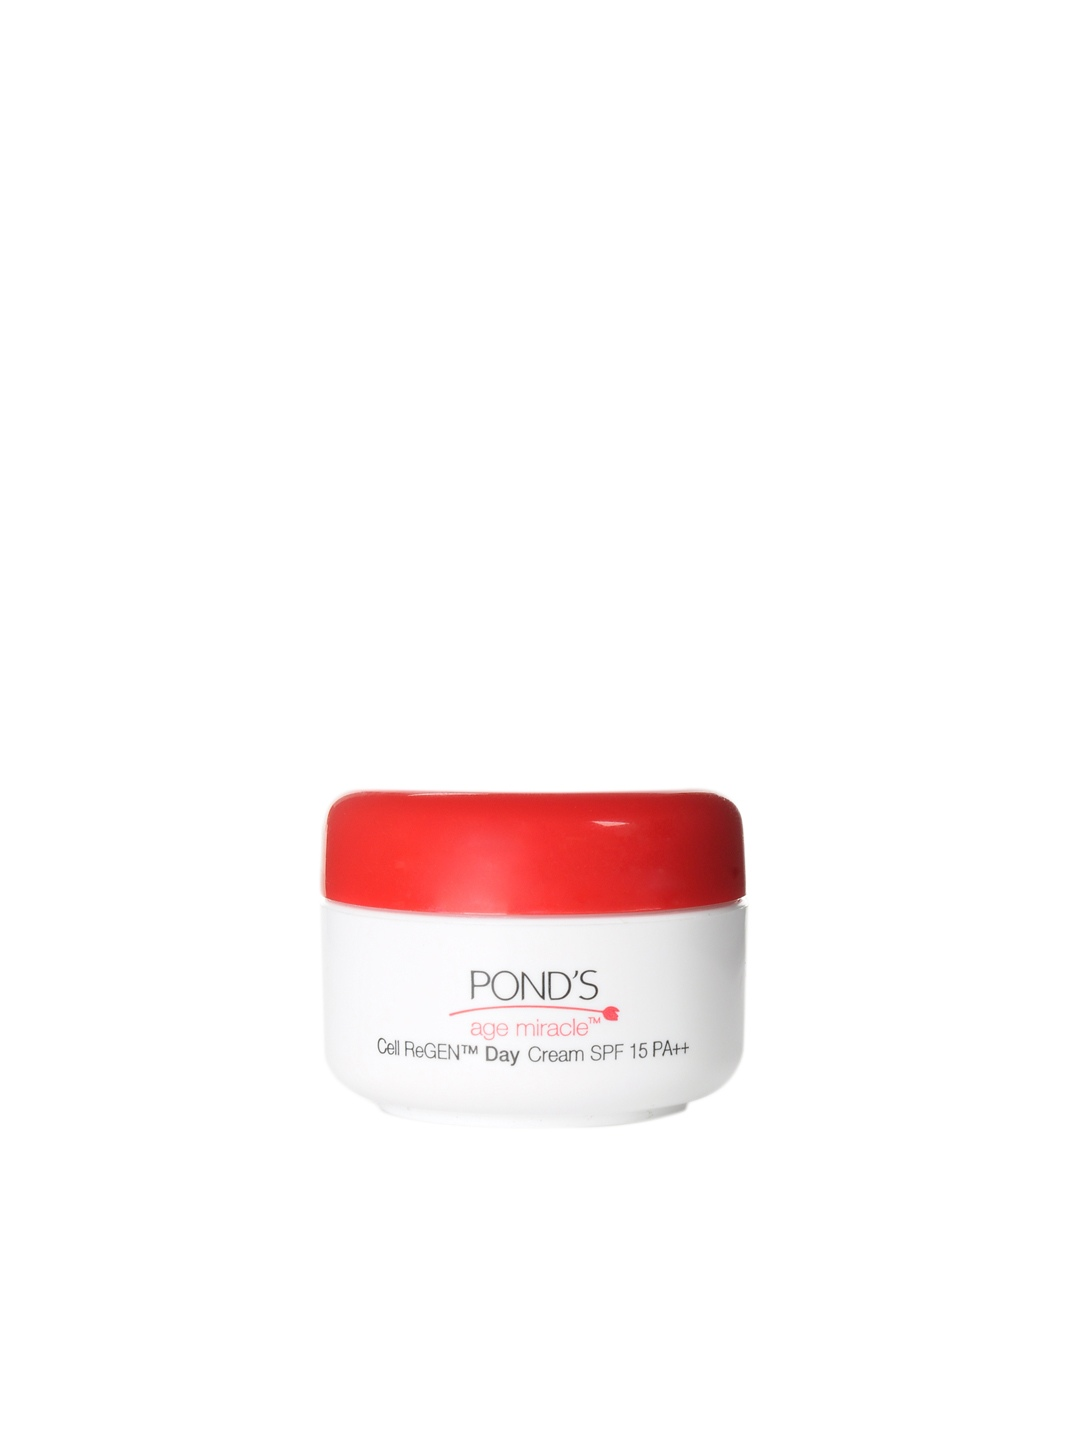 Myntra ponds gold radiance youthful glow day cream spf 15 for Ponds products